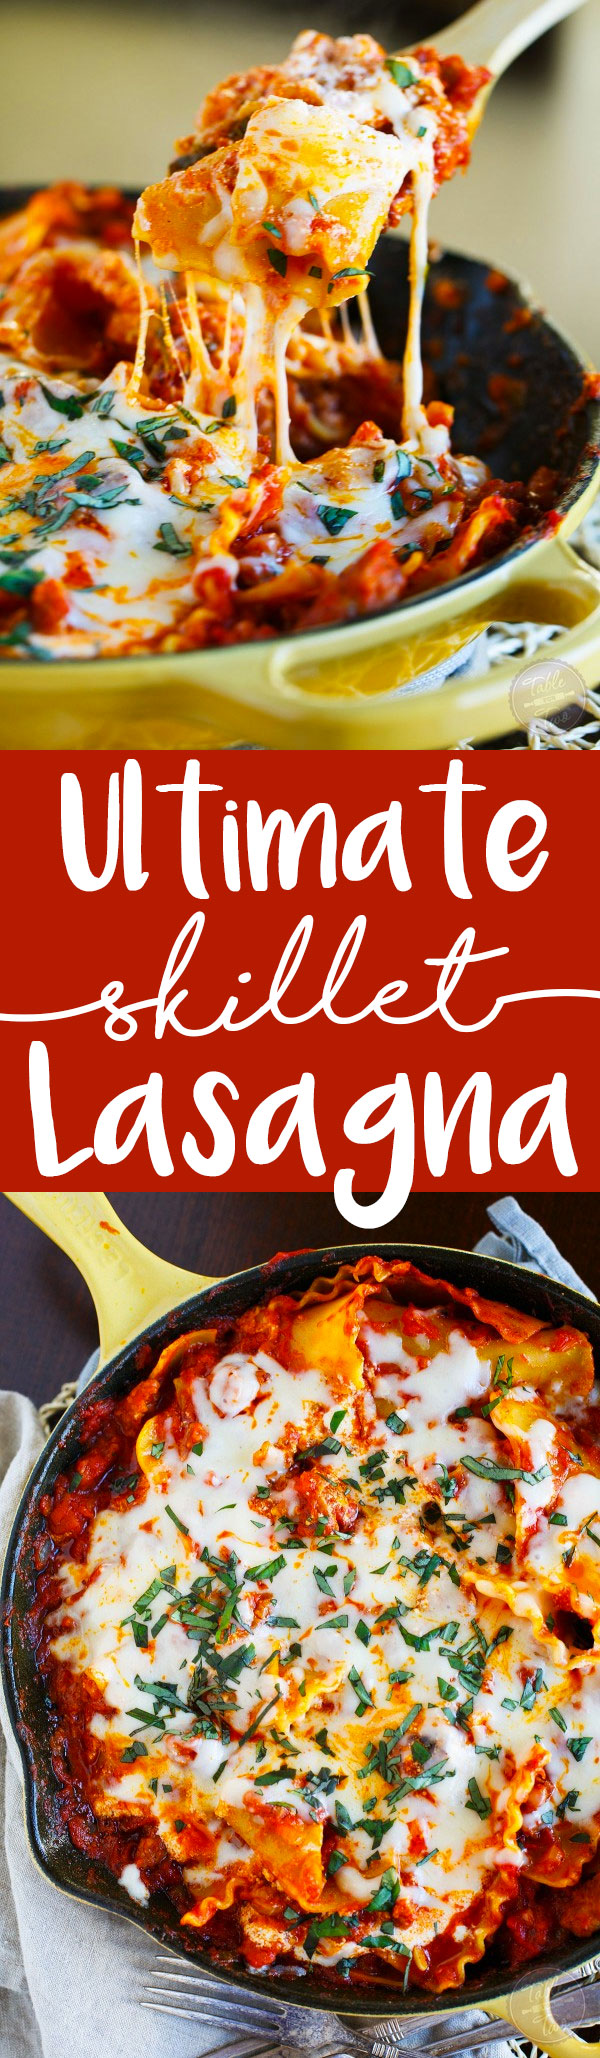 ultimate-skillet-lasagna-collage